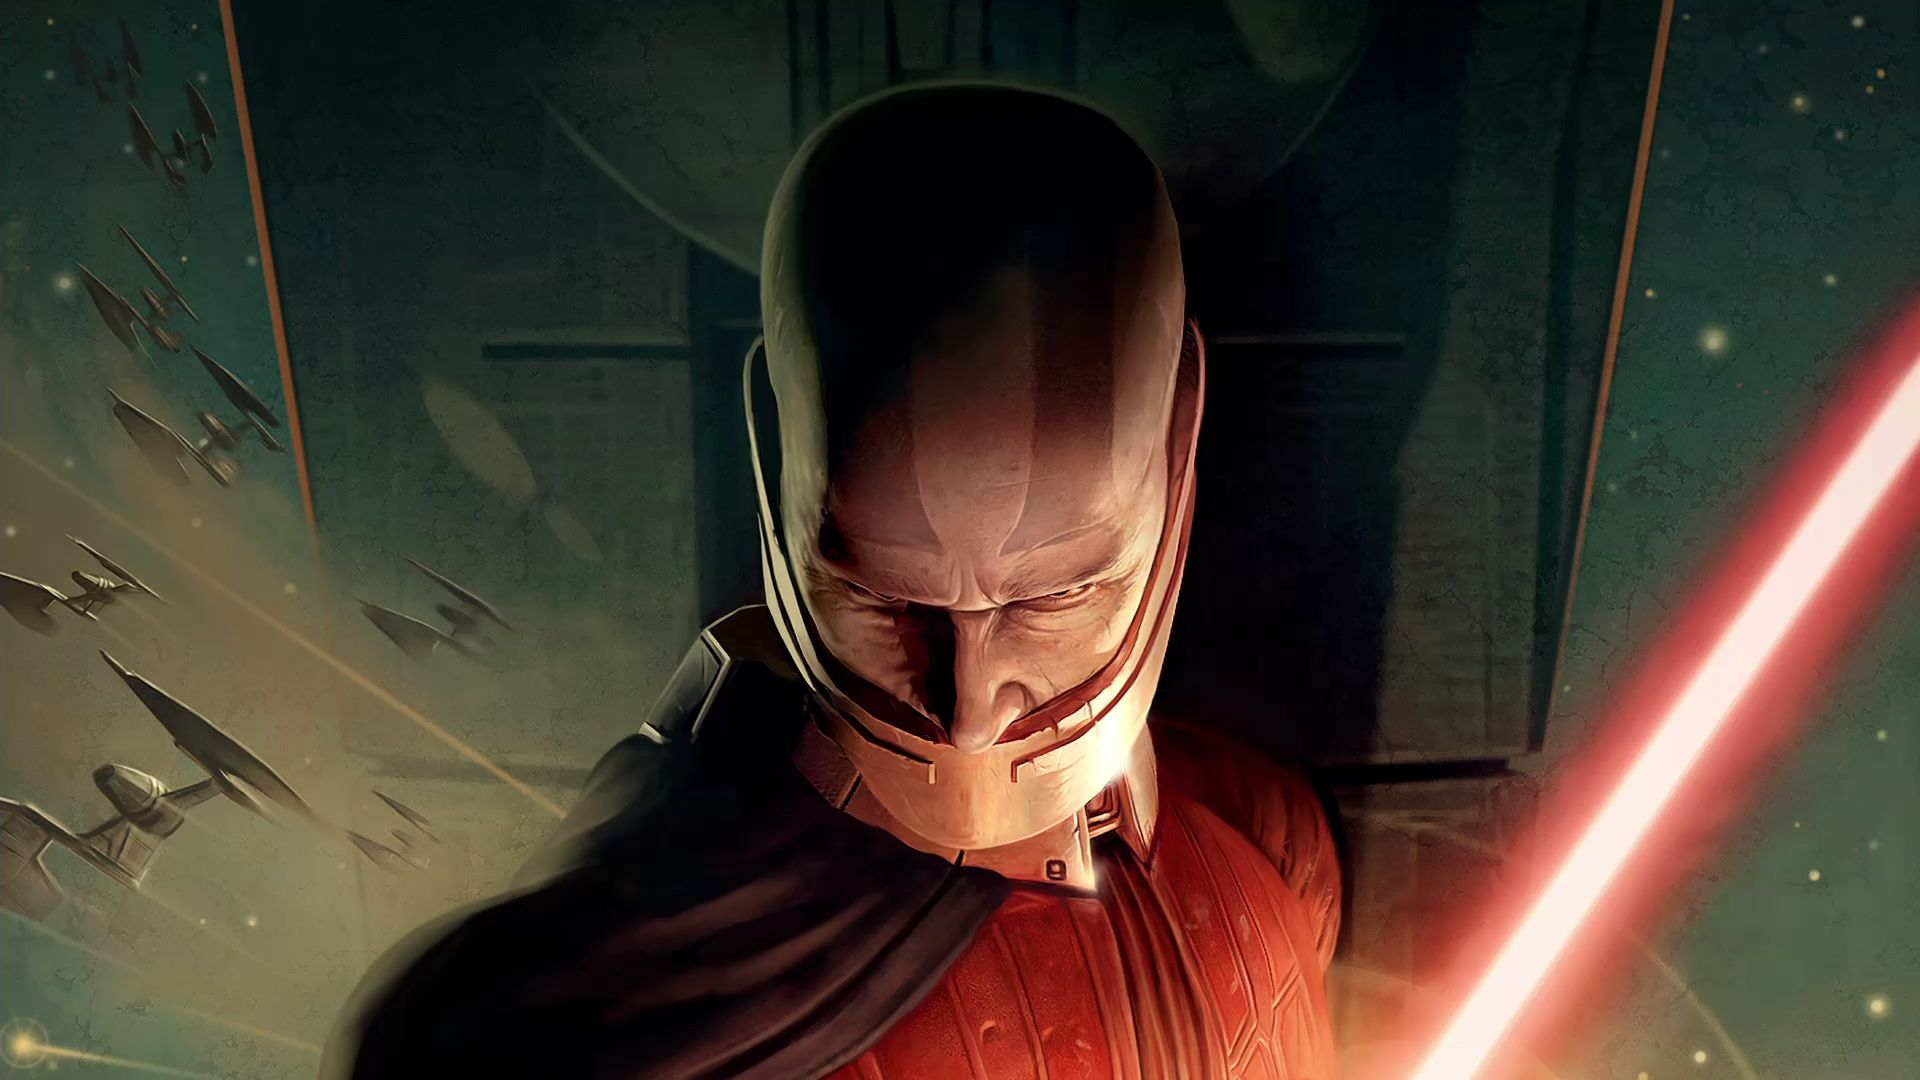 Aspyr radi Star Wars: Star Wars: Knights of the Old Republic remake?